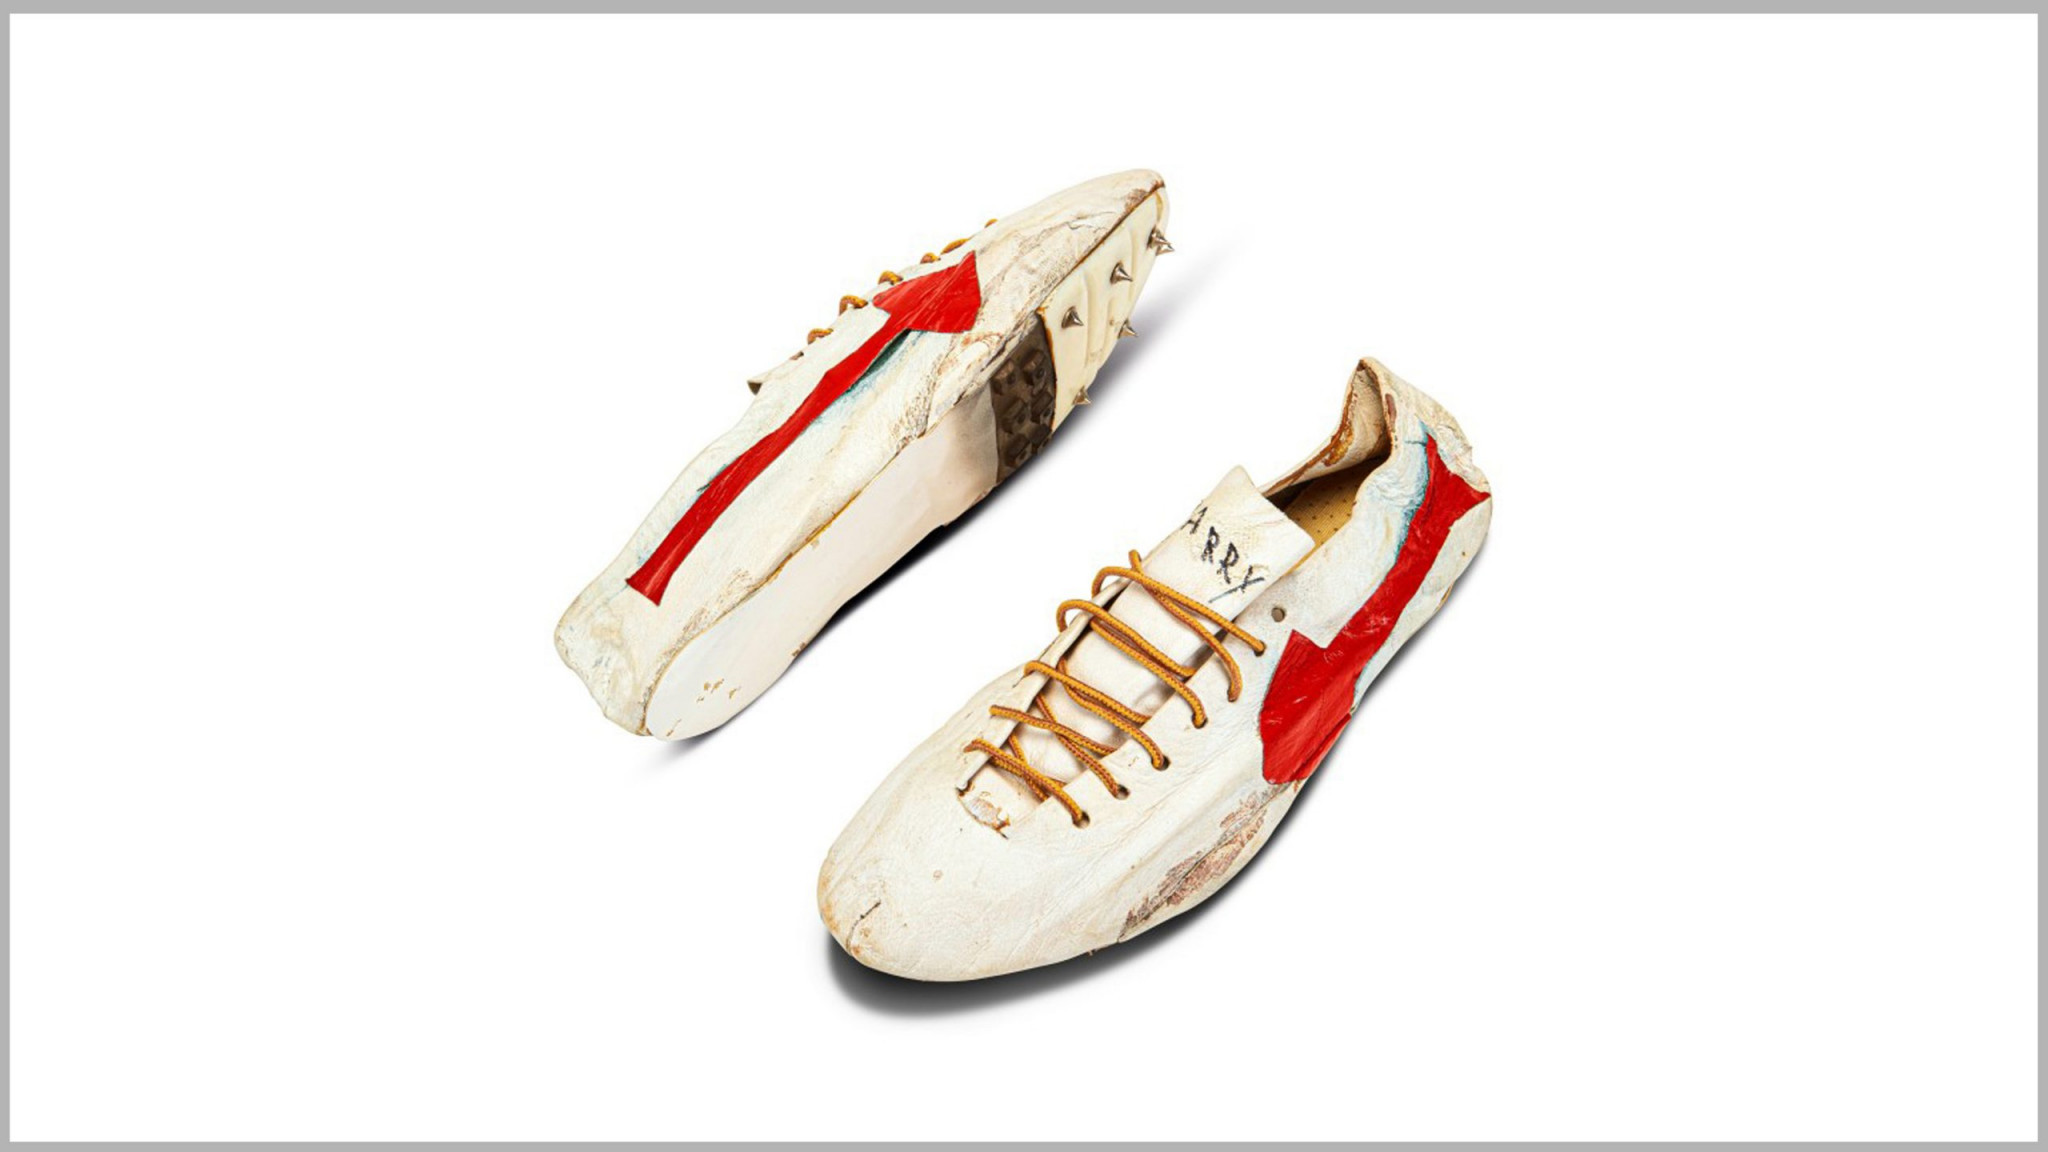 The spikes made for Canadian sprinter Harry Jerome featured an early design of the famous waffle soles pioneered by Nike ©Sotheby's